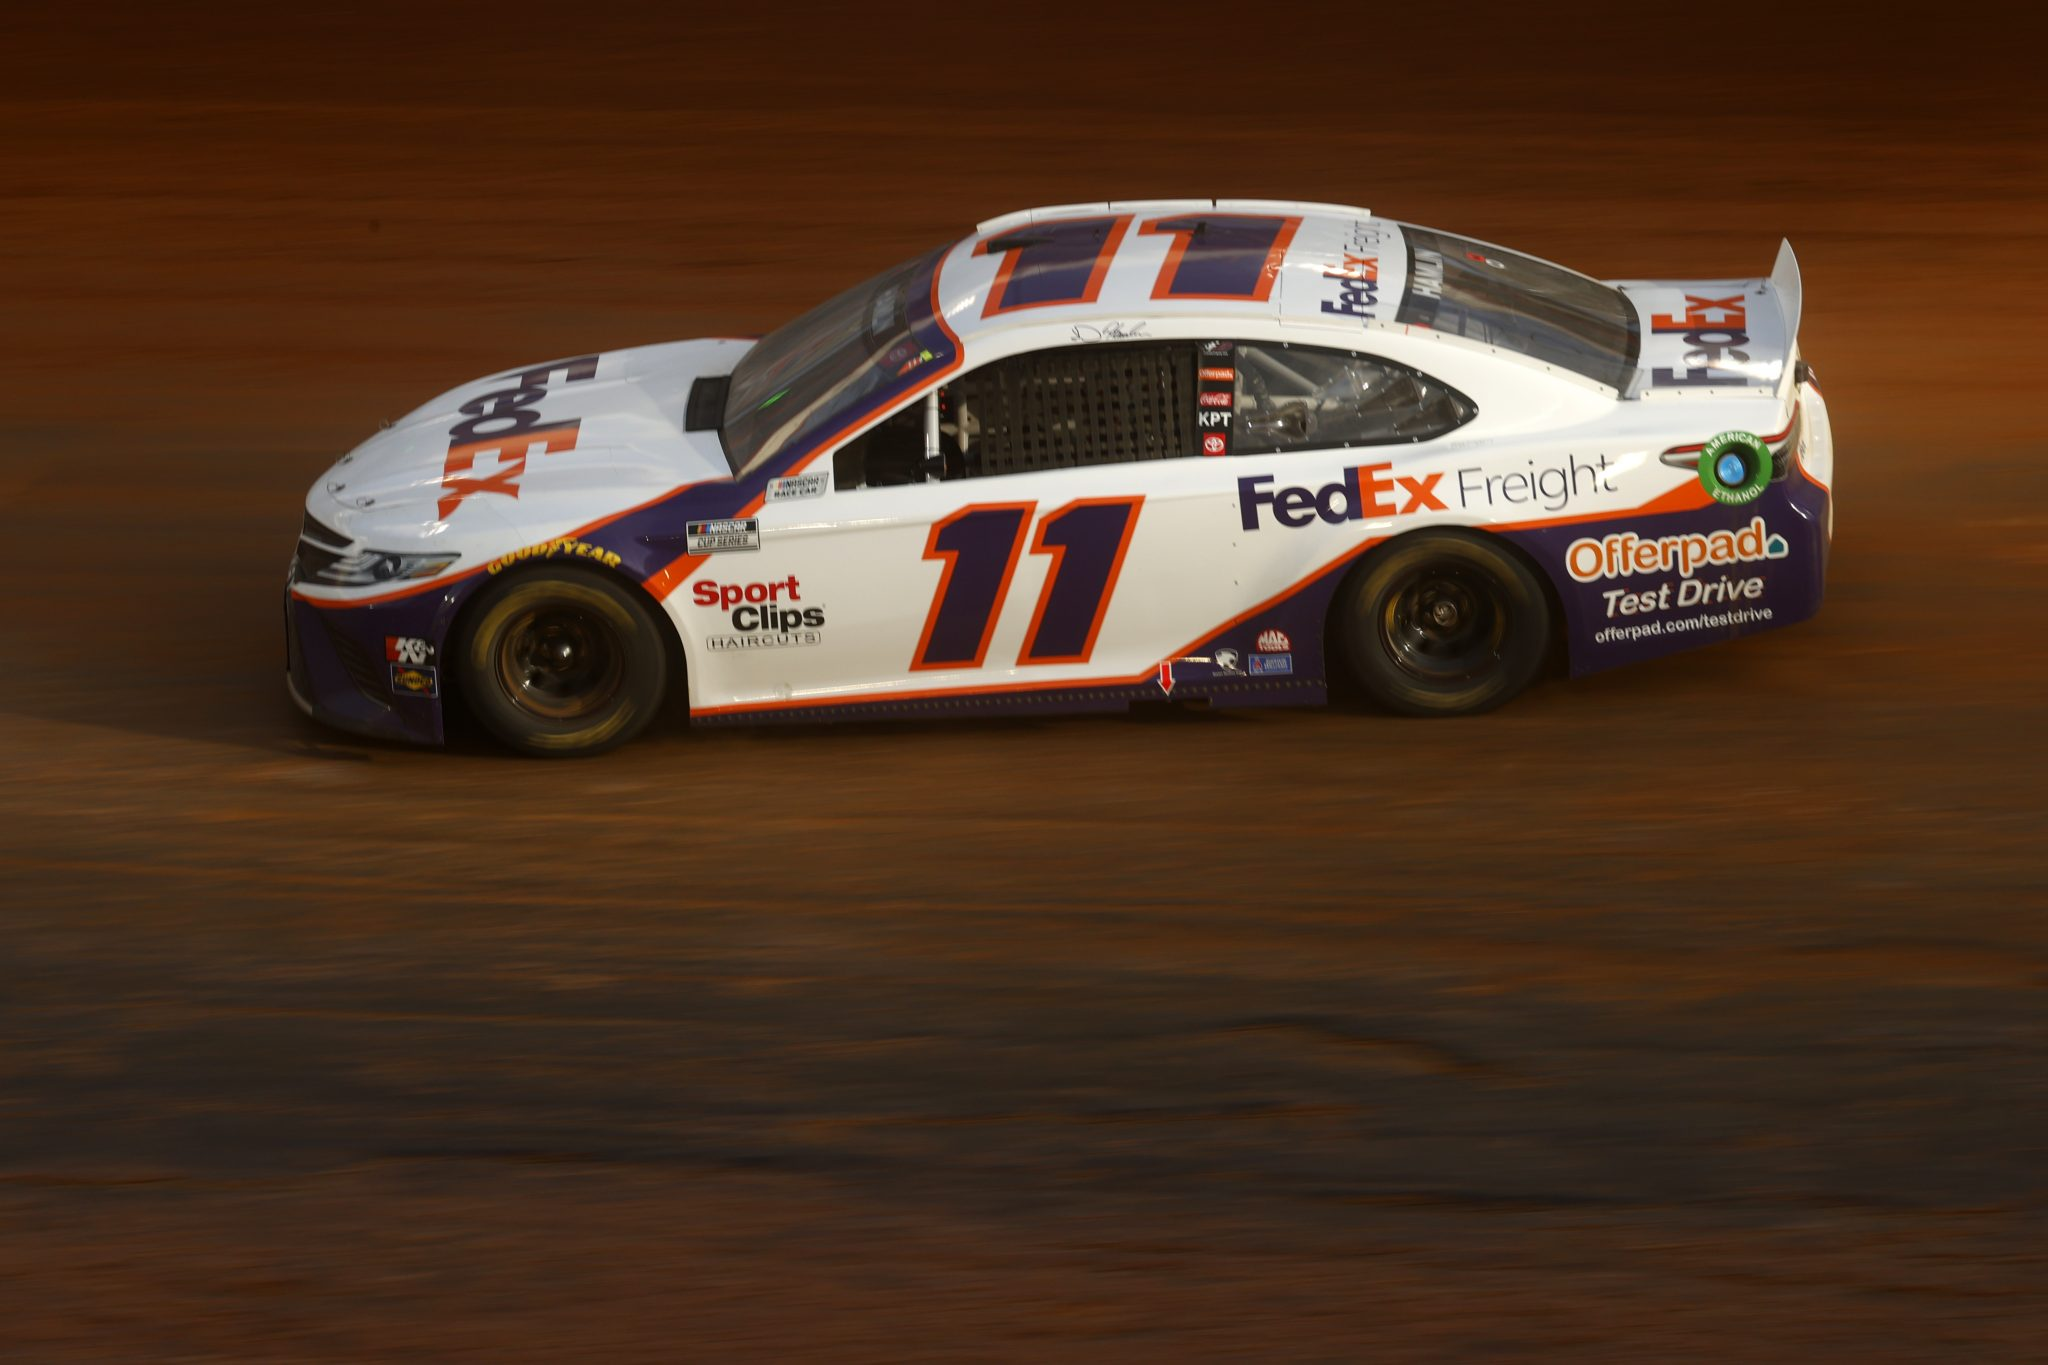 BRISTOL, TENNESSEE - MARCH 26: Denny Hamlin, driver of the #11 FedEx Freight Toyota, drives during practice for the NASCAR Cup Series Food City Dirt Race at Bristol Motor Speedway on March 26, 2021 in Bristol, Tennessee. (Photo by Chris Graythen/Getty Images) | Getty Images